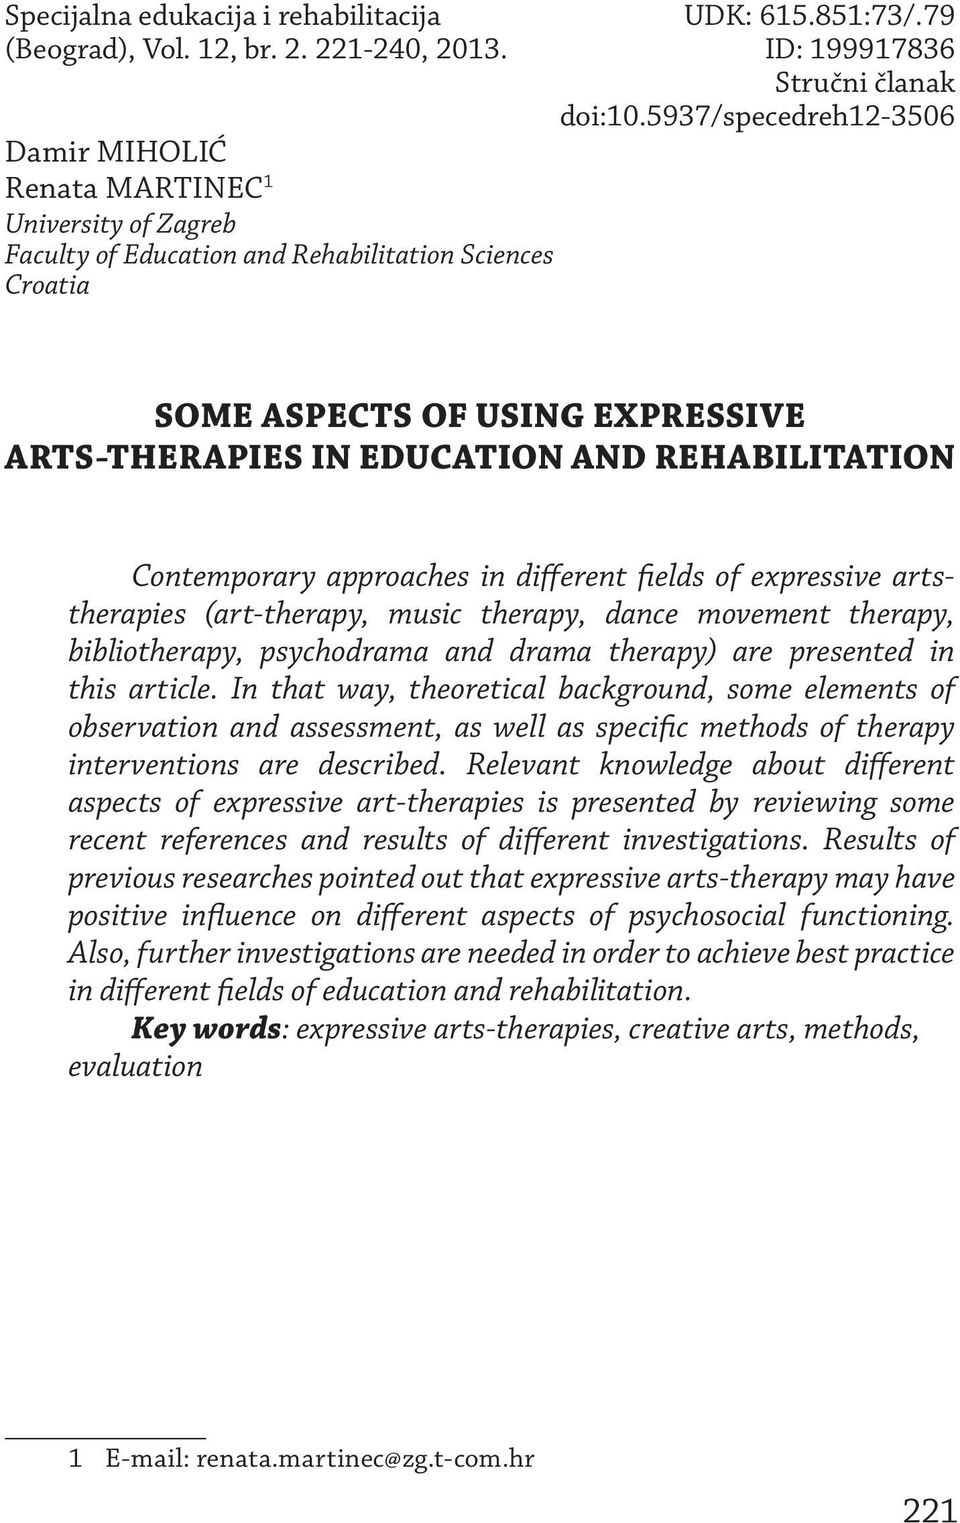 5937/specedreh12-3506 SOME ASPECTS OF USING EXPRESSIVE ARTS-THERAPIES IN EDUCATION AND REHABILITATION Contemporary approaches in different fields of expressive artstherapies (art-therapy, music